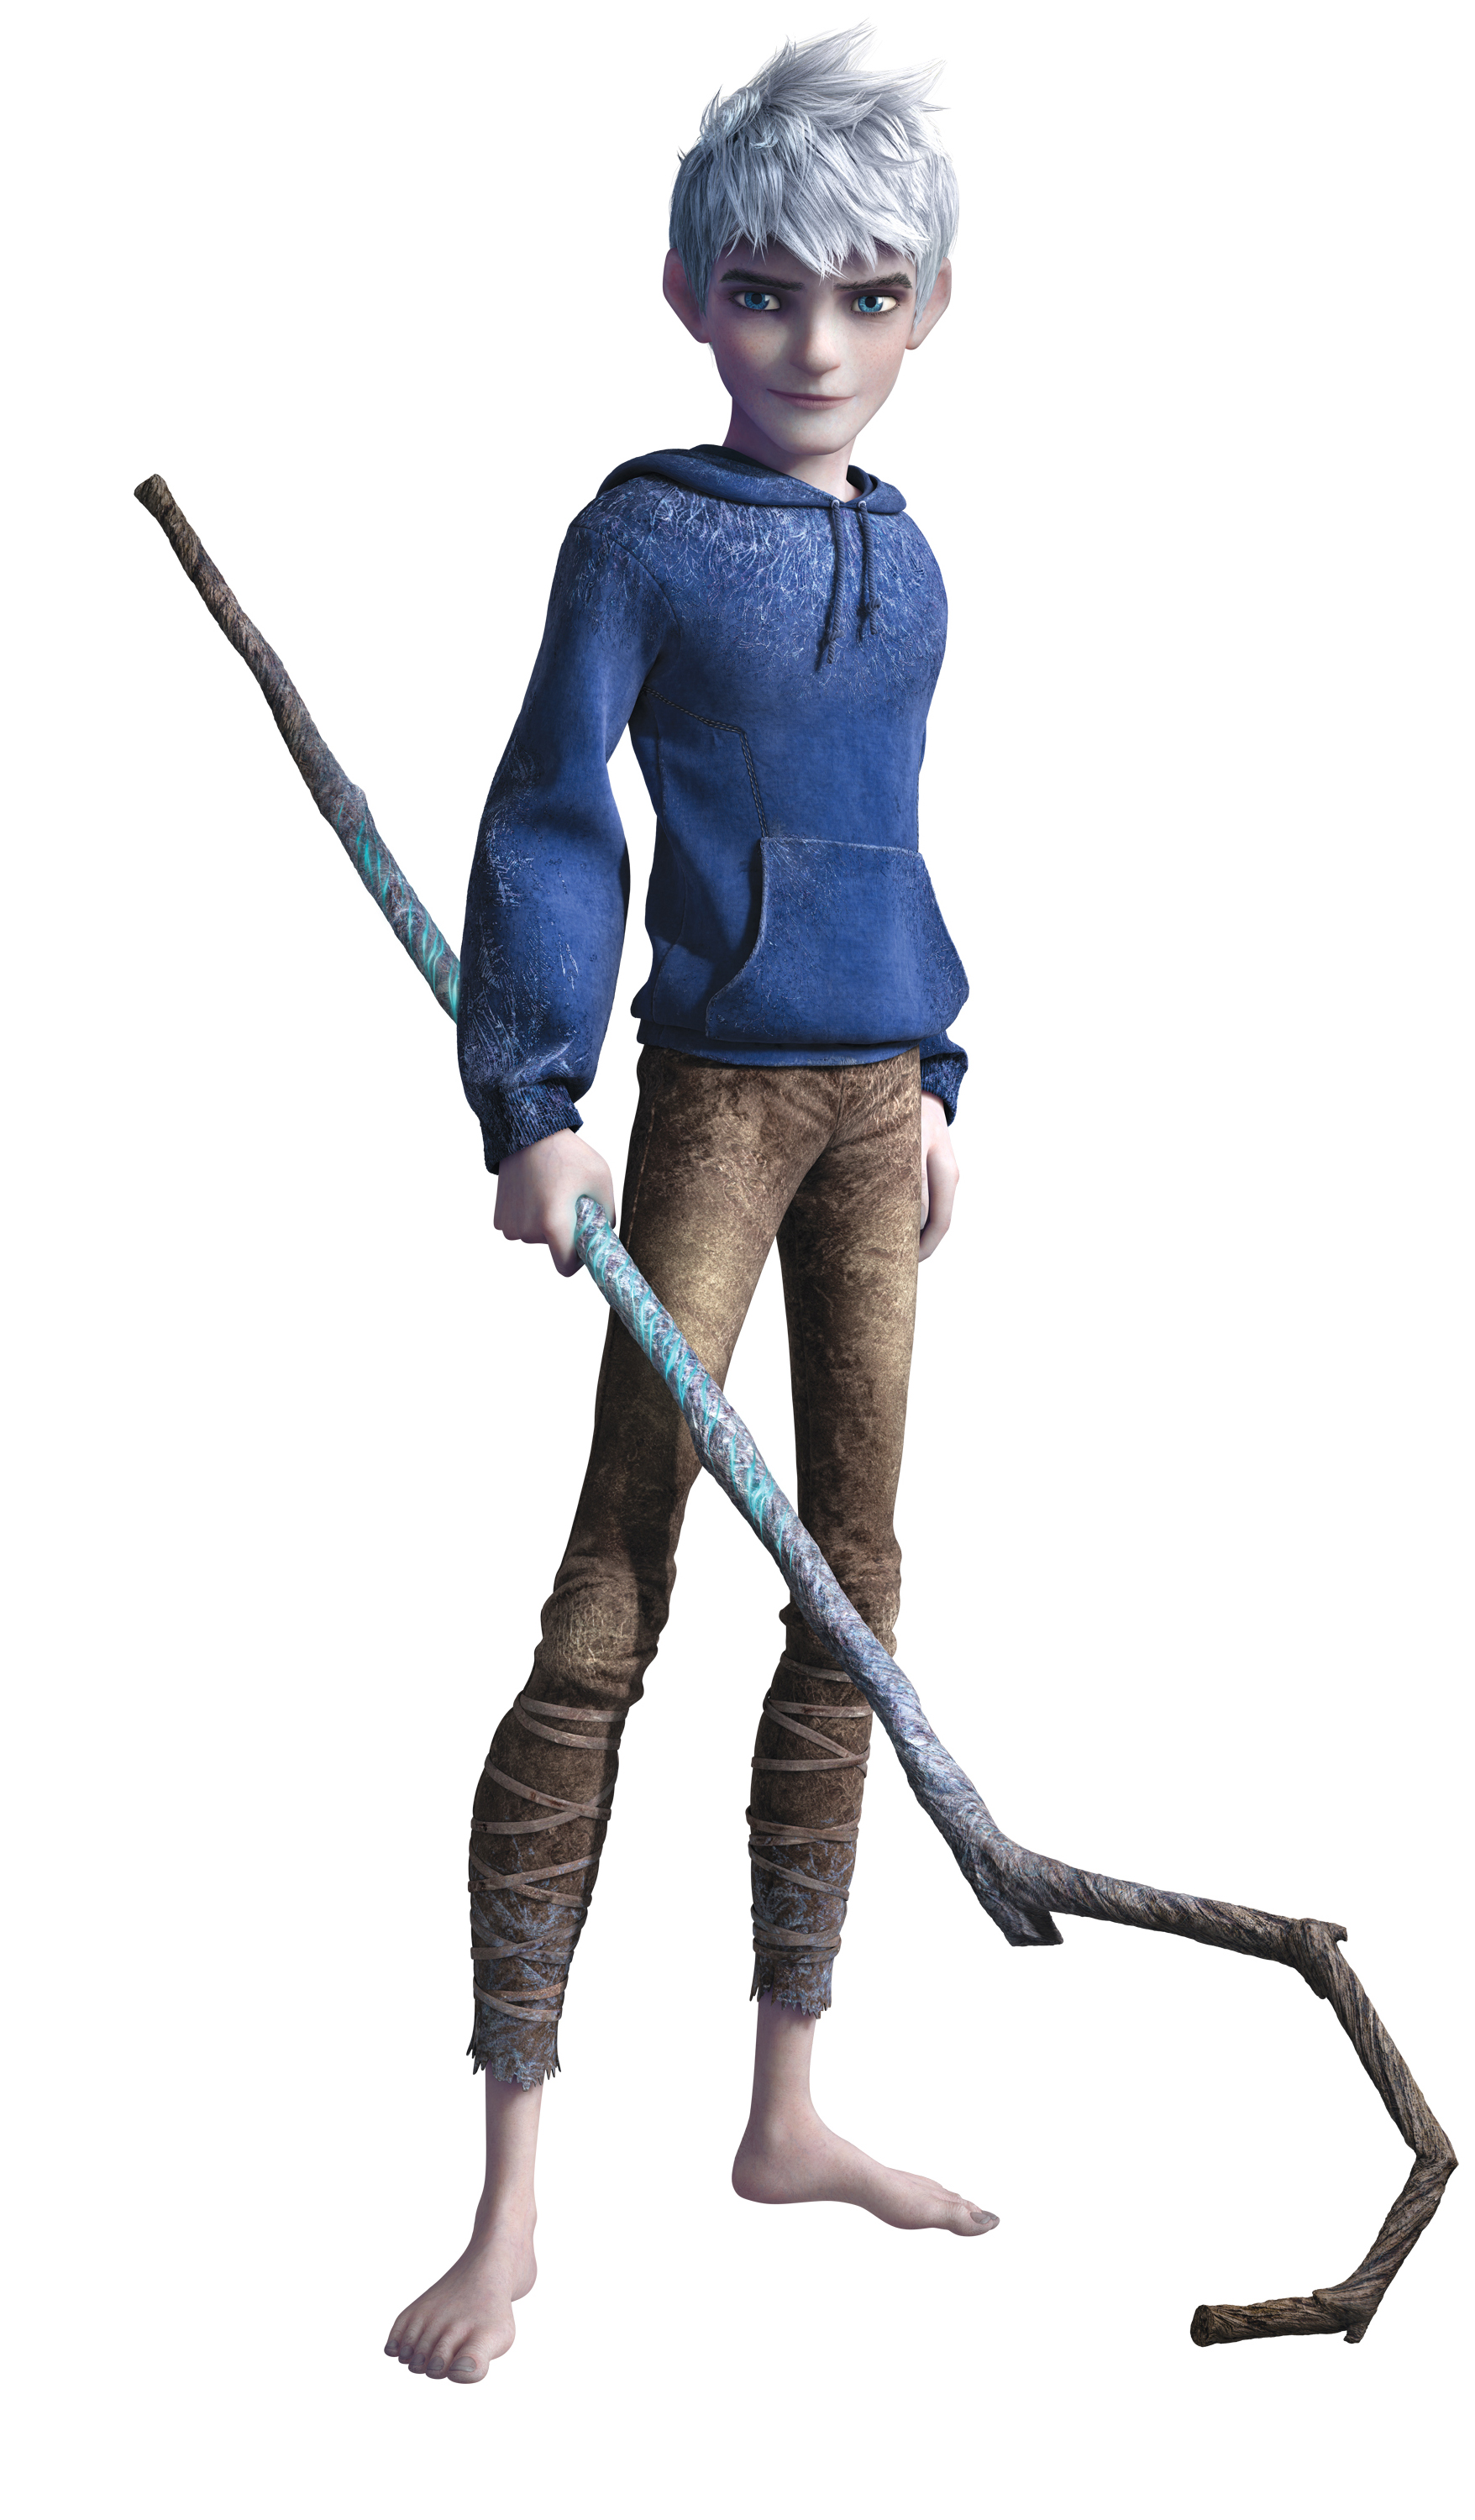 Jack frost rise of the guardians wiki fandom powered - Pics of rise of the guardians ...